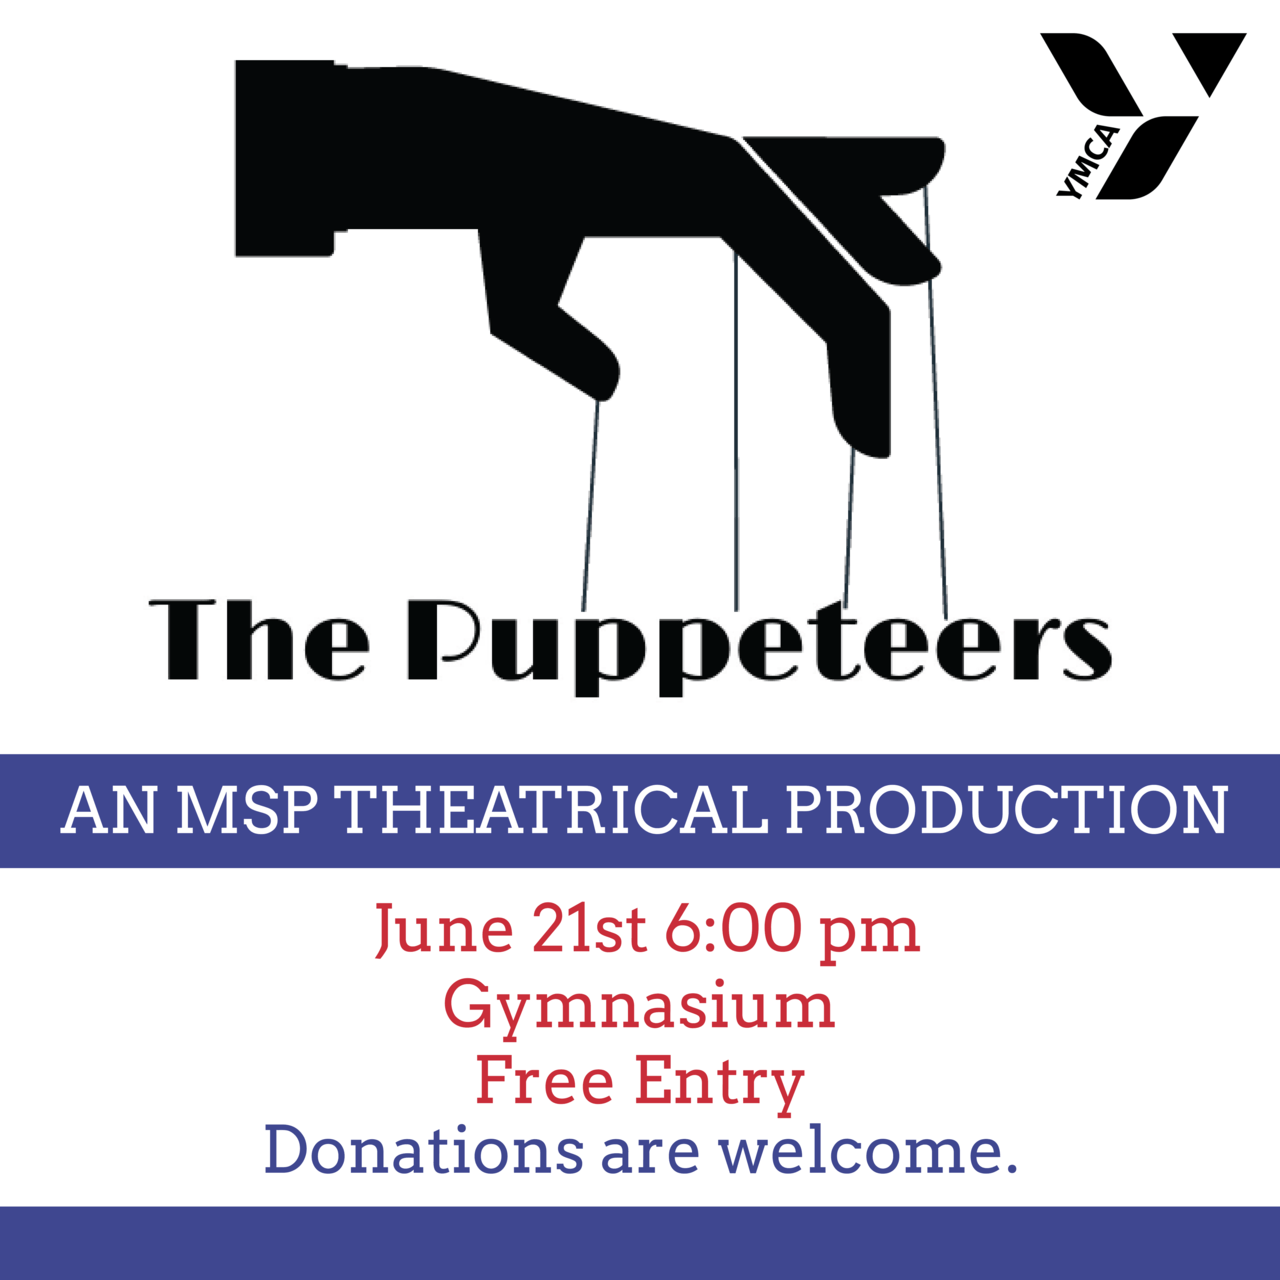 The Puppeteers